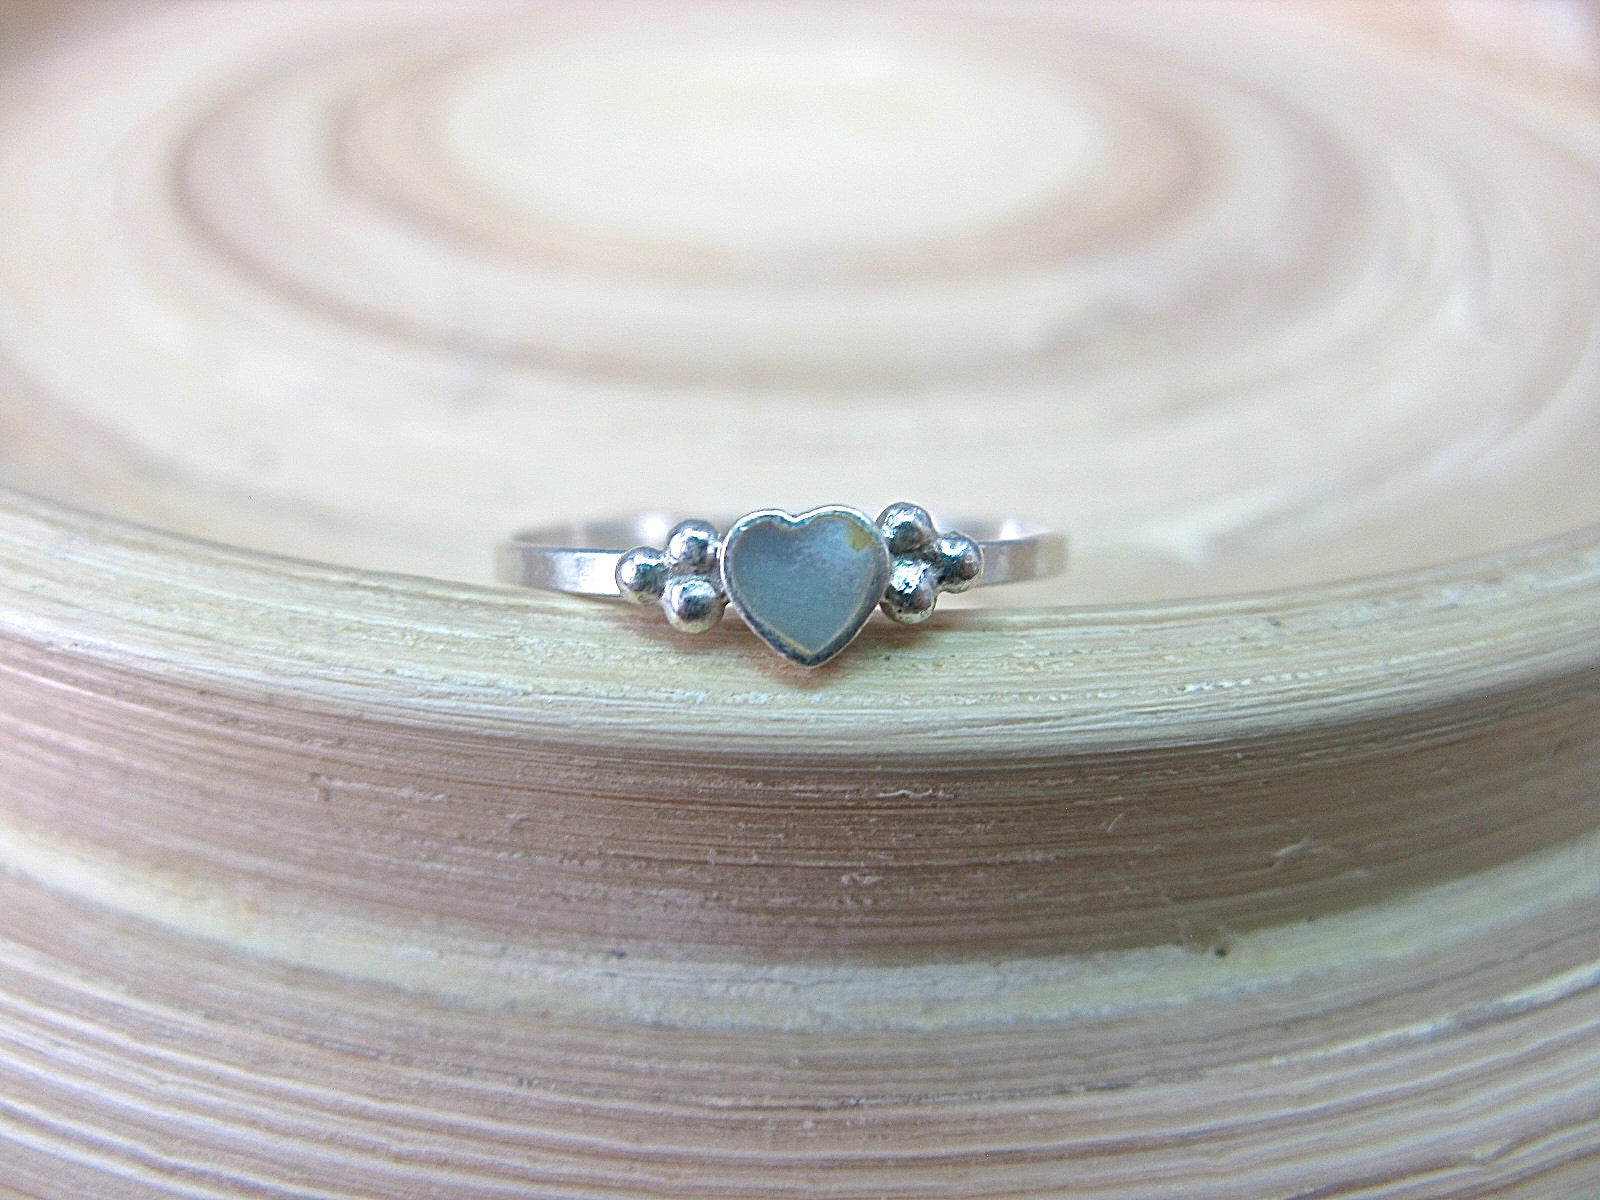 Mother of Pearl Heart Ring Minimalist Jewlery in 925 Sterling Silver Ring Faith Owl - Faith Owl